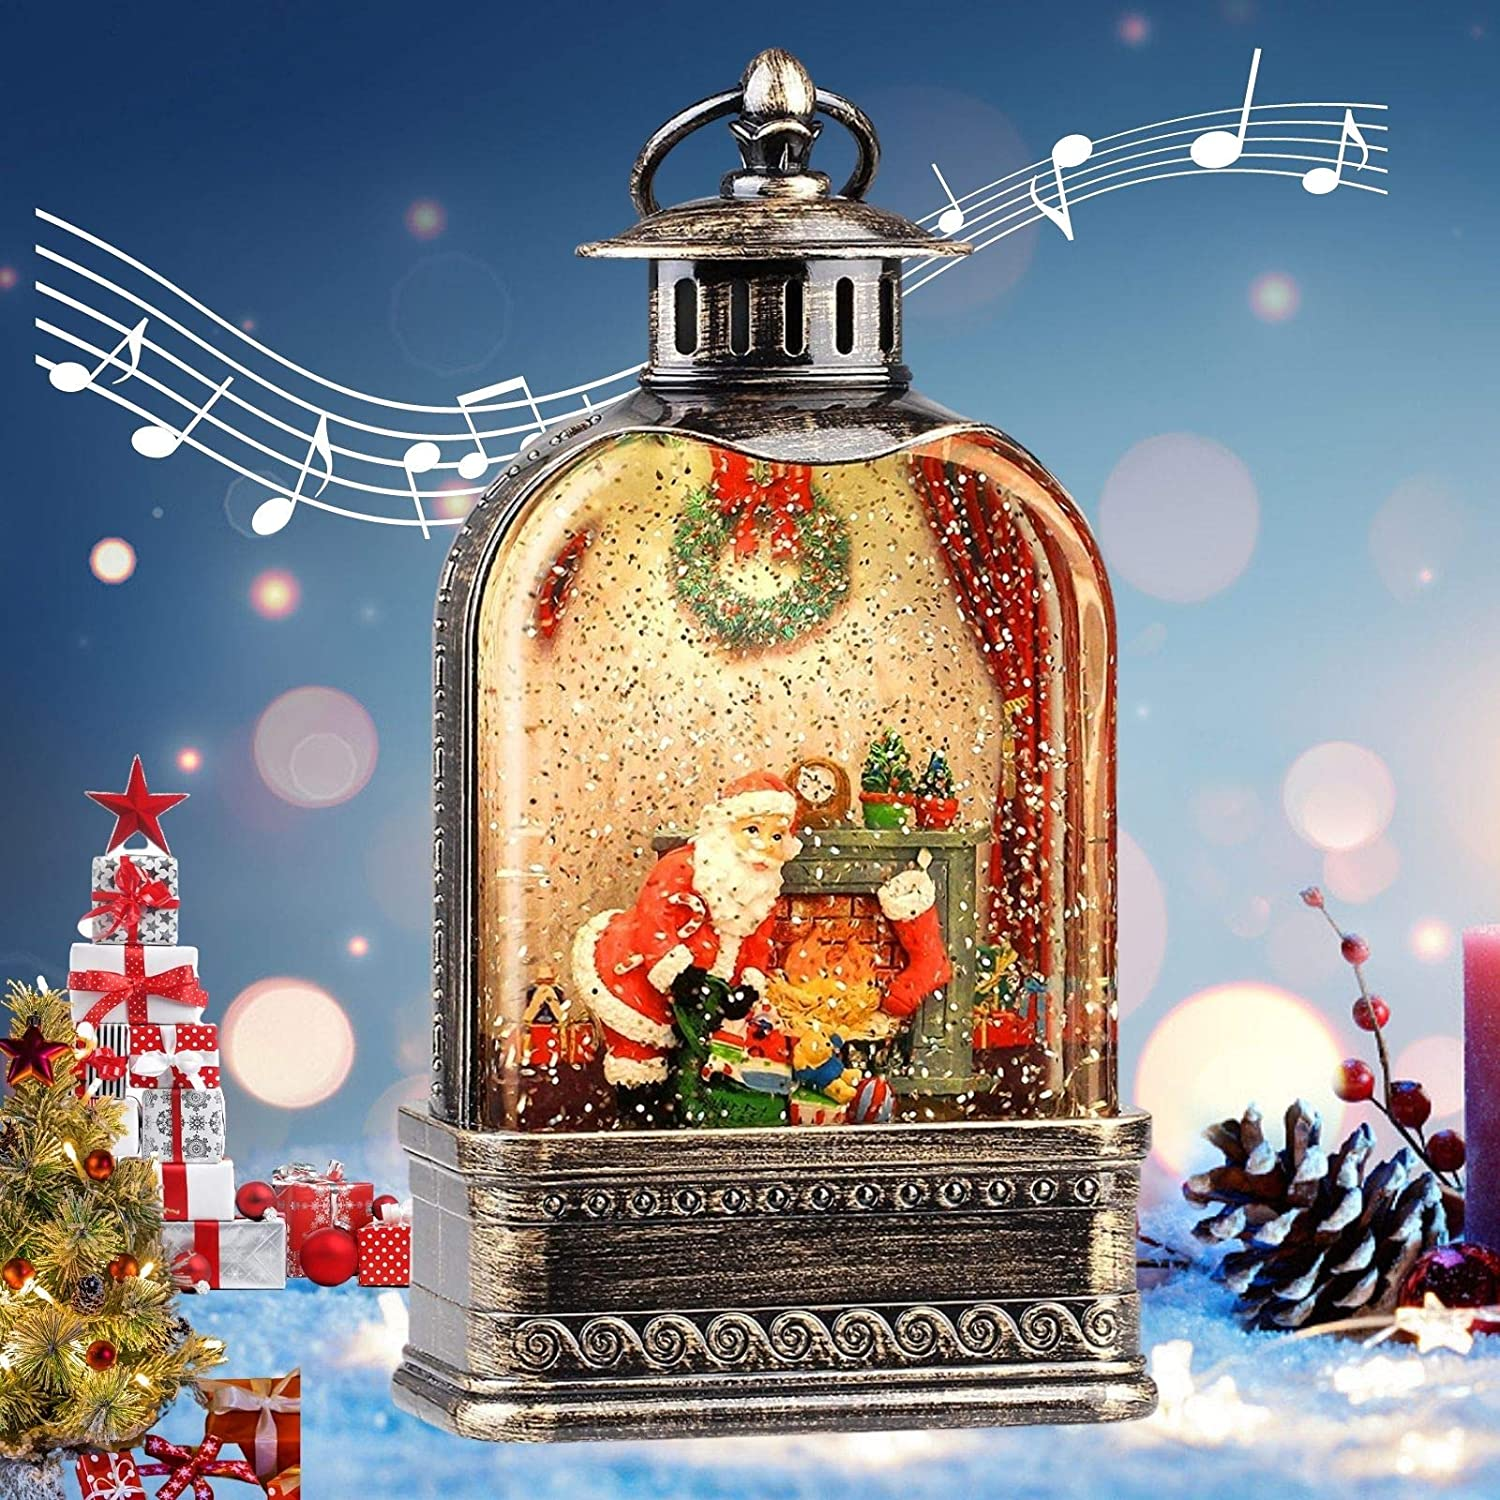 Christmas Snow Globe Lantern with Santa and Fireplace, Xmas Glitter Musical Water Lanterns, 11in USB/3AA Battery Operated 6H Timer Church Water Globe Lamp, Party Decor